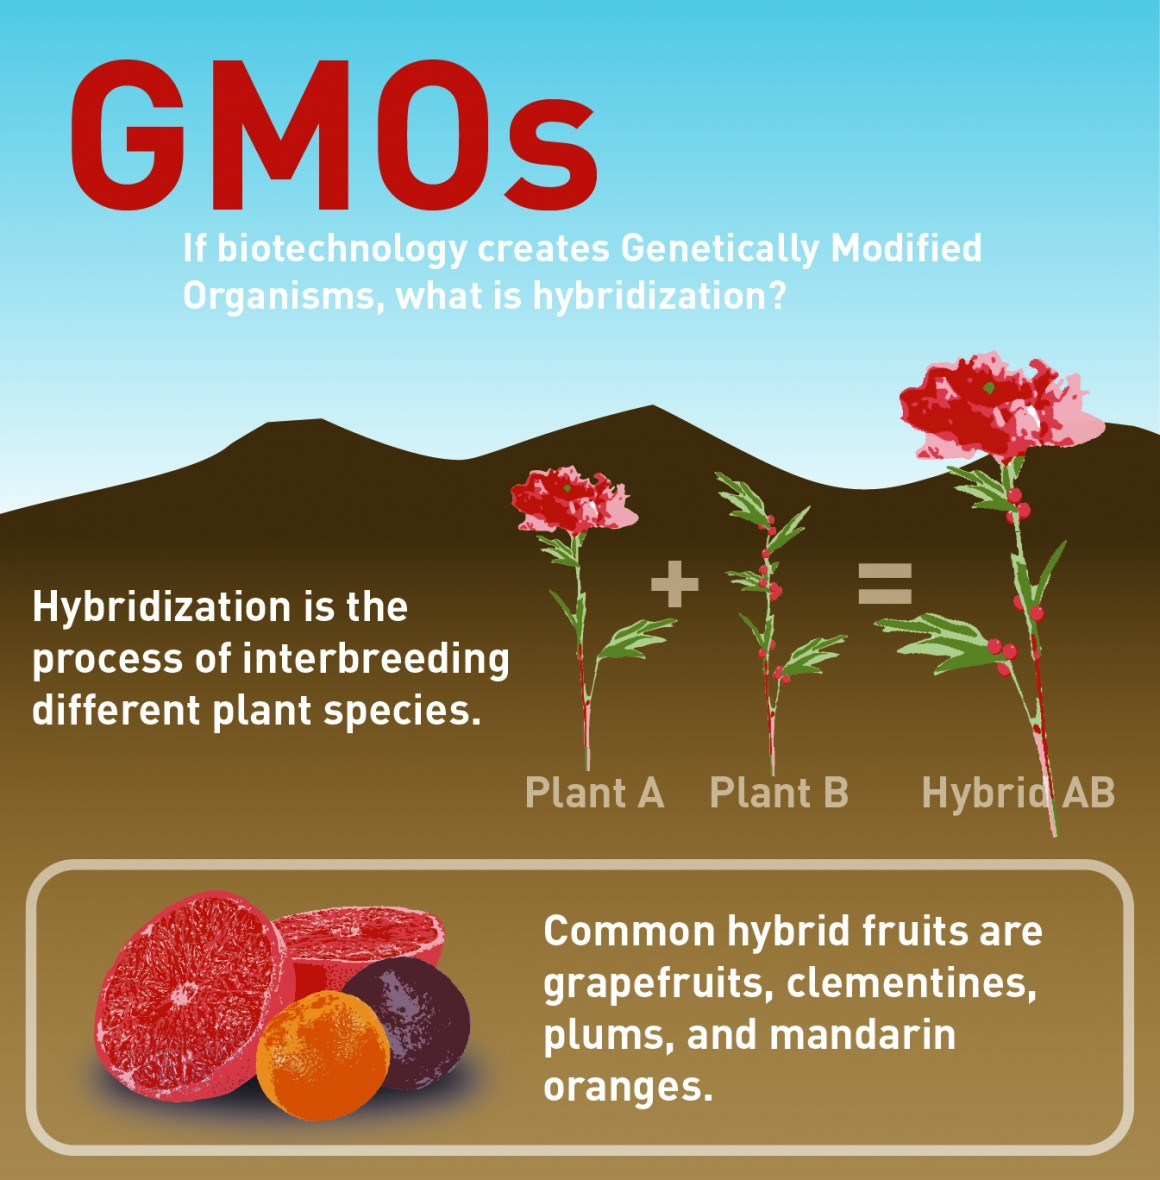 GMO (Cameron Clements, Ana Torres and Lauren Conte, Scroll Illustration)